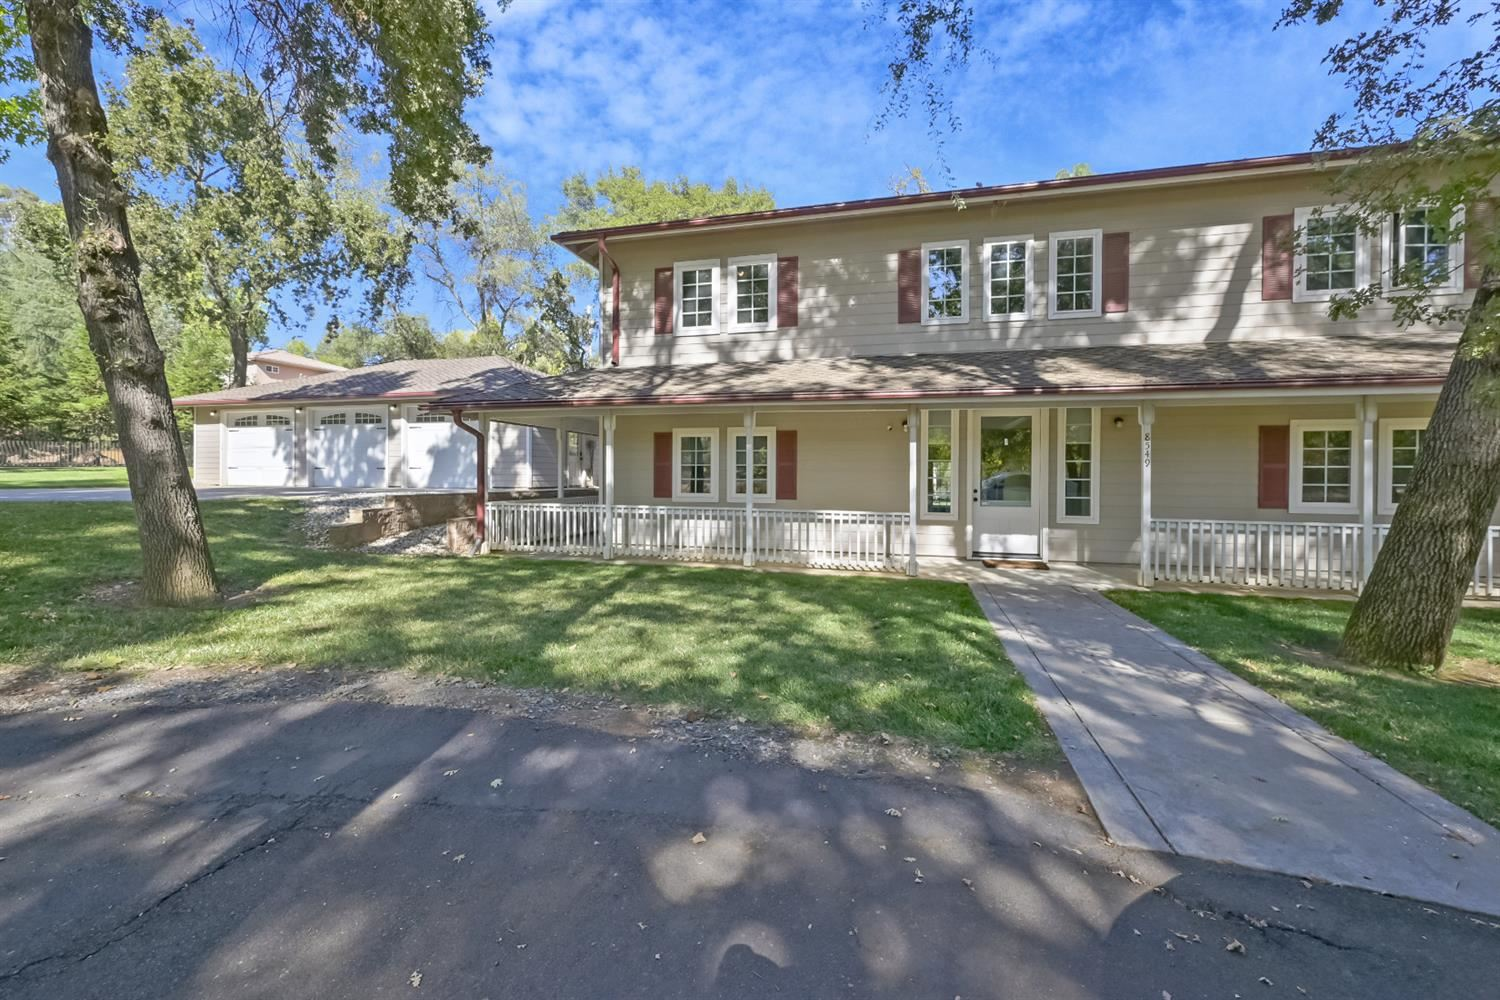 Photo of 8549 Willow Valley Place, Granite Bay, CA 95746 (MLS # 221112366)